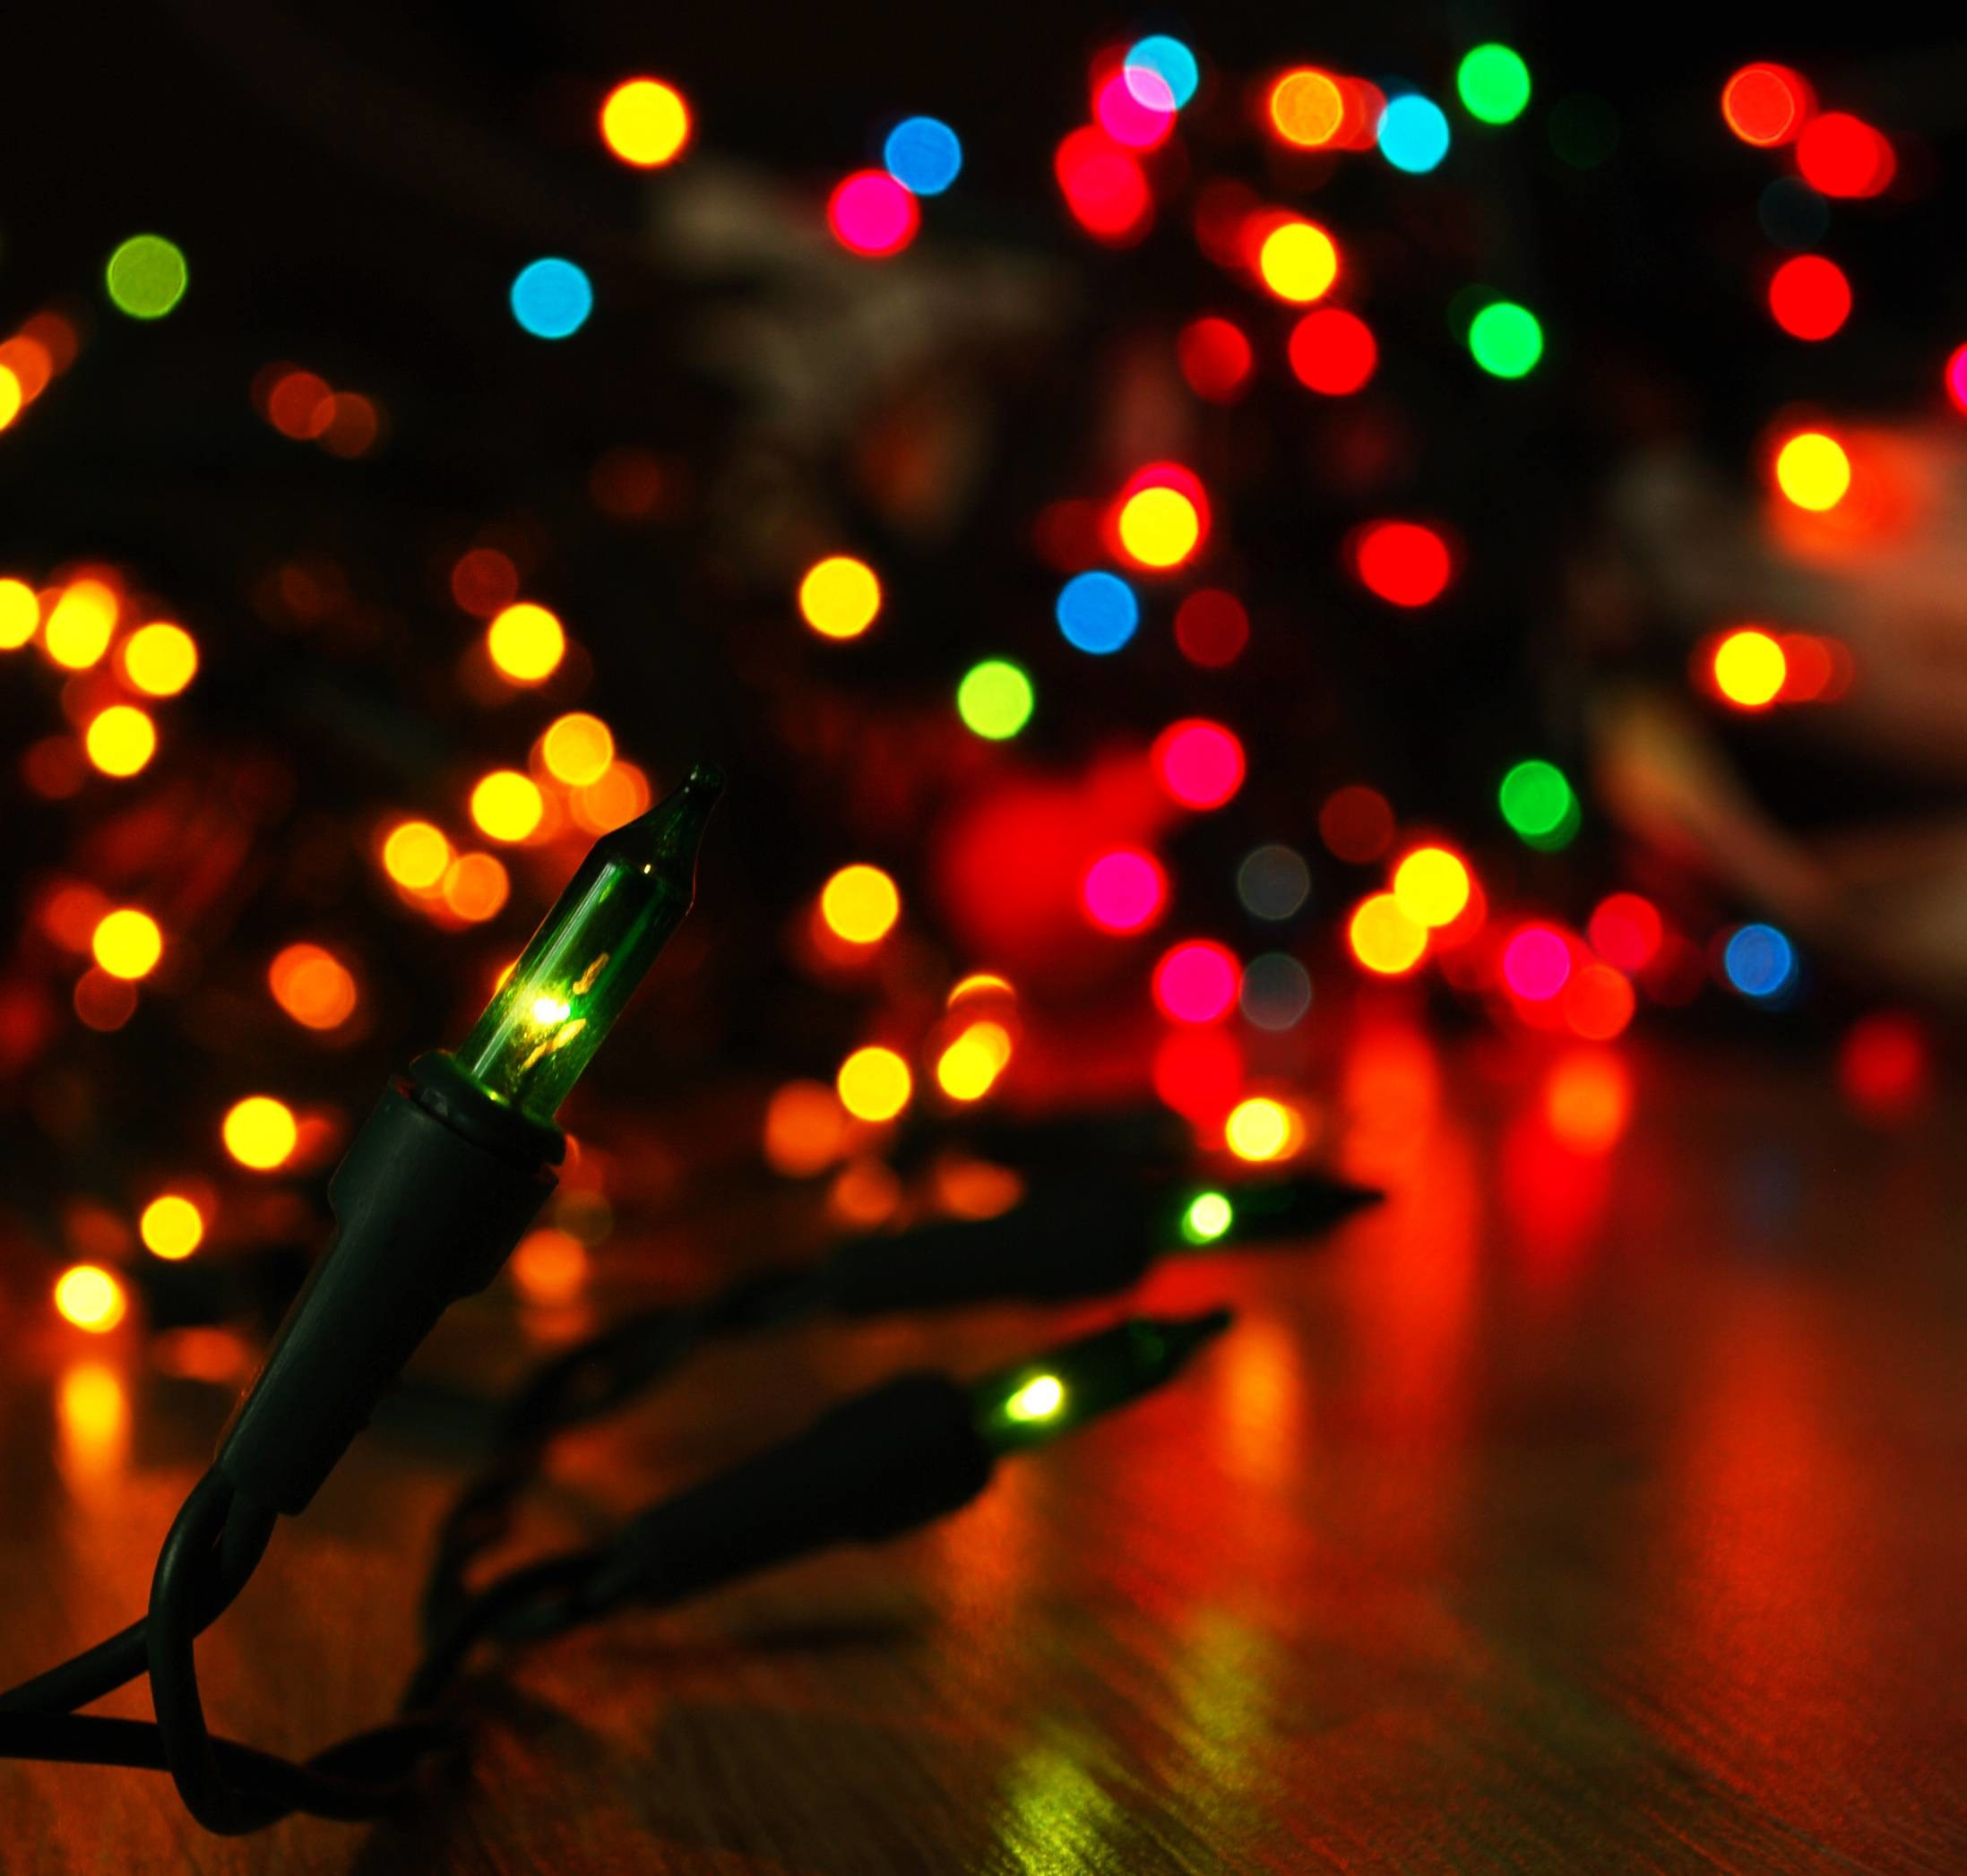 2195x2094 Wallpapers For > Christmas Tree Lights Desktop Background